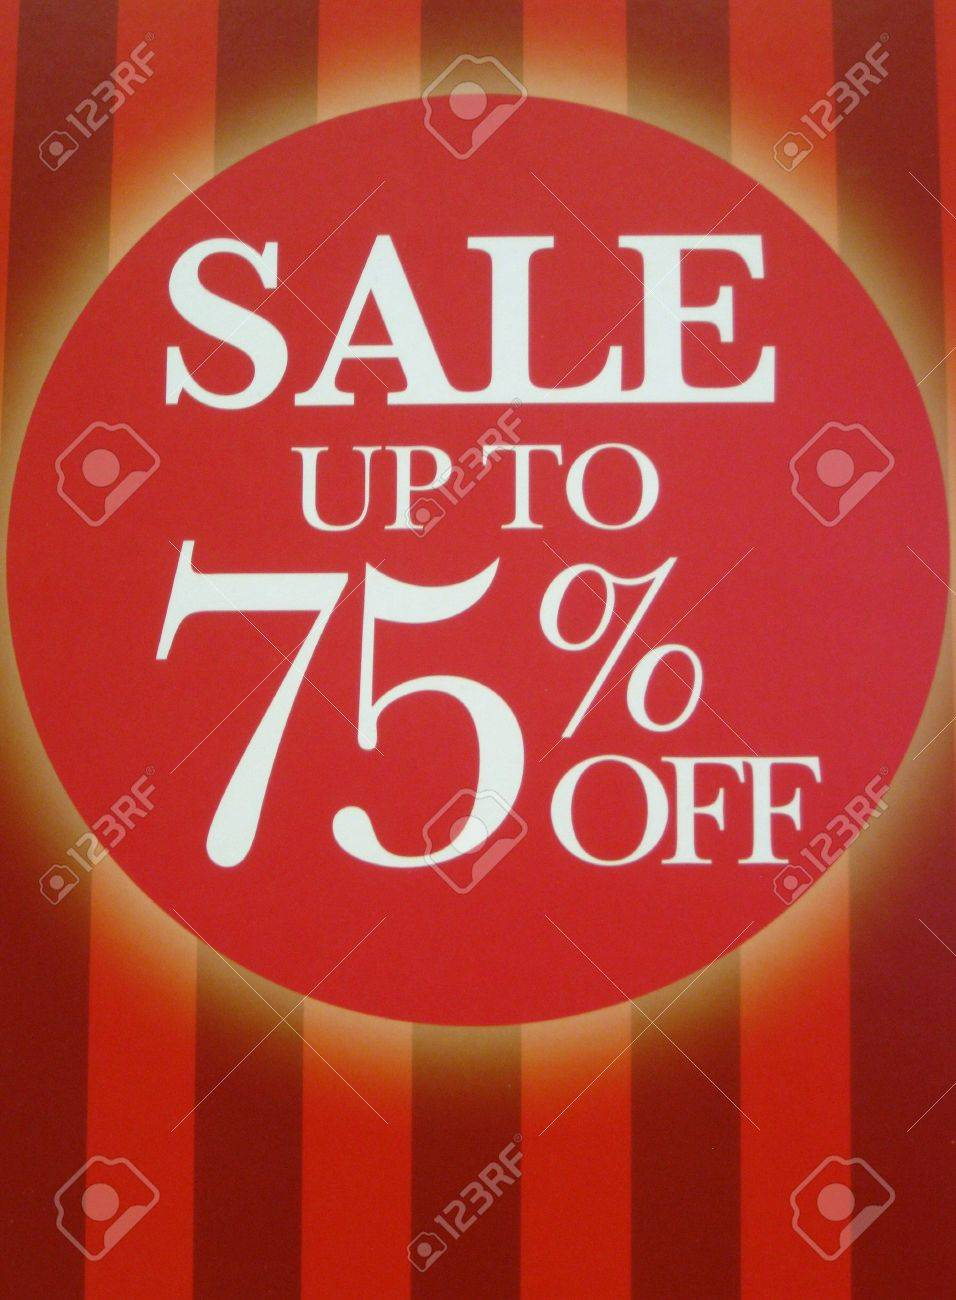 Sale sign Stock Photo - 6362587